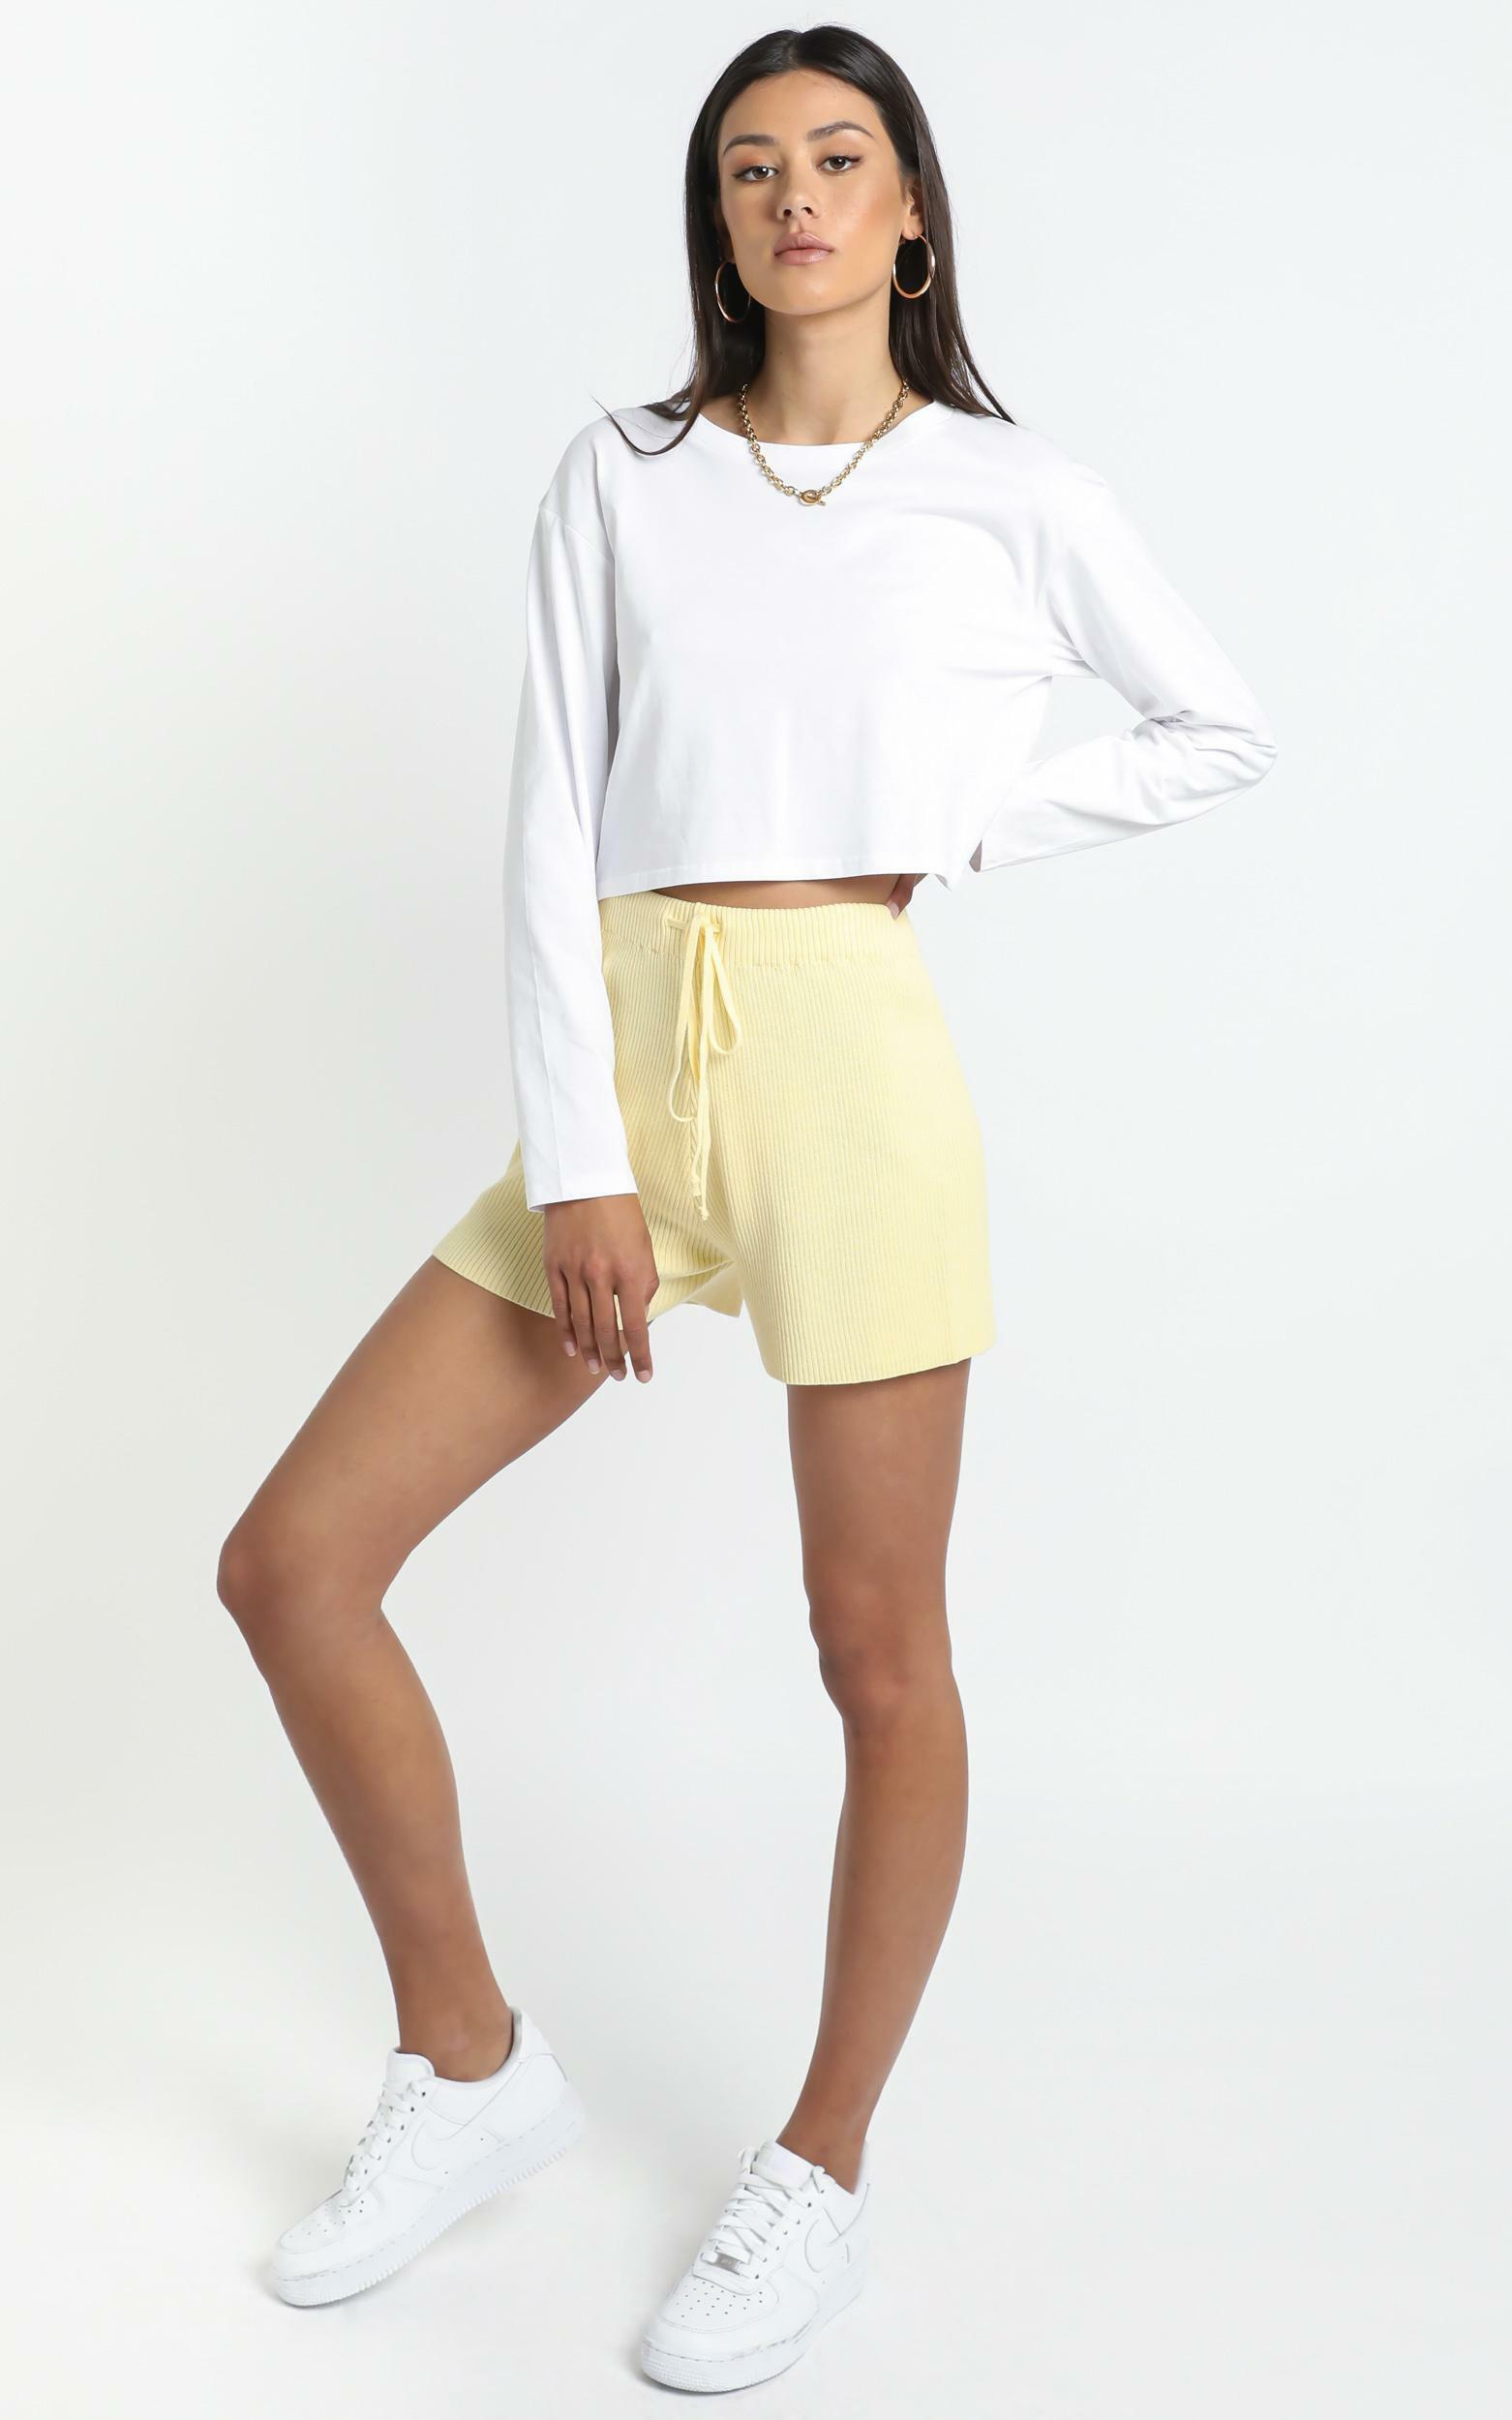 Lullaby Club - Alex Knit Shorts in Lemon - L/XL, Yellow, hi-res image number null